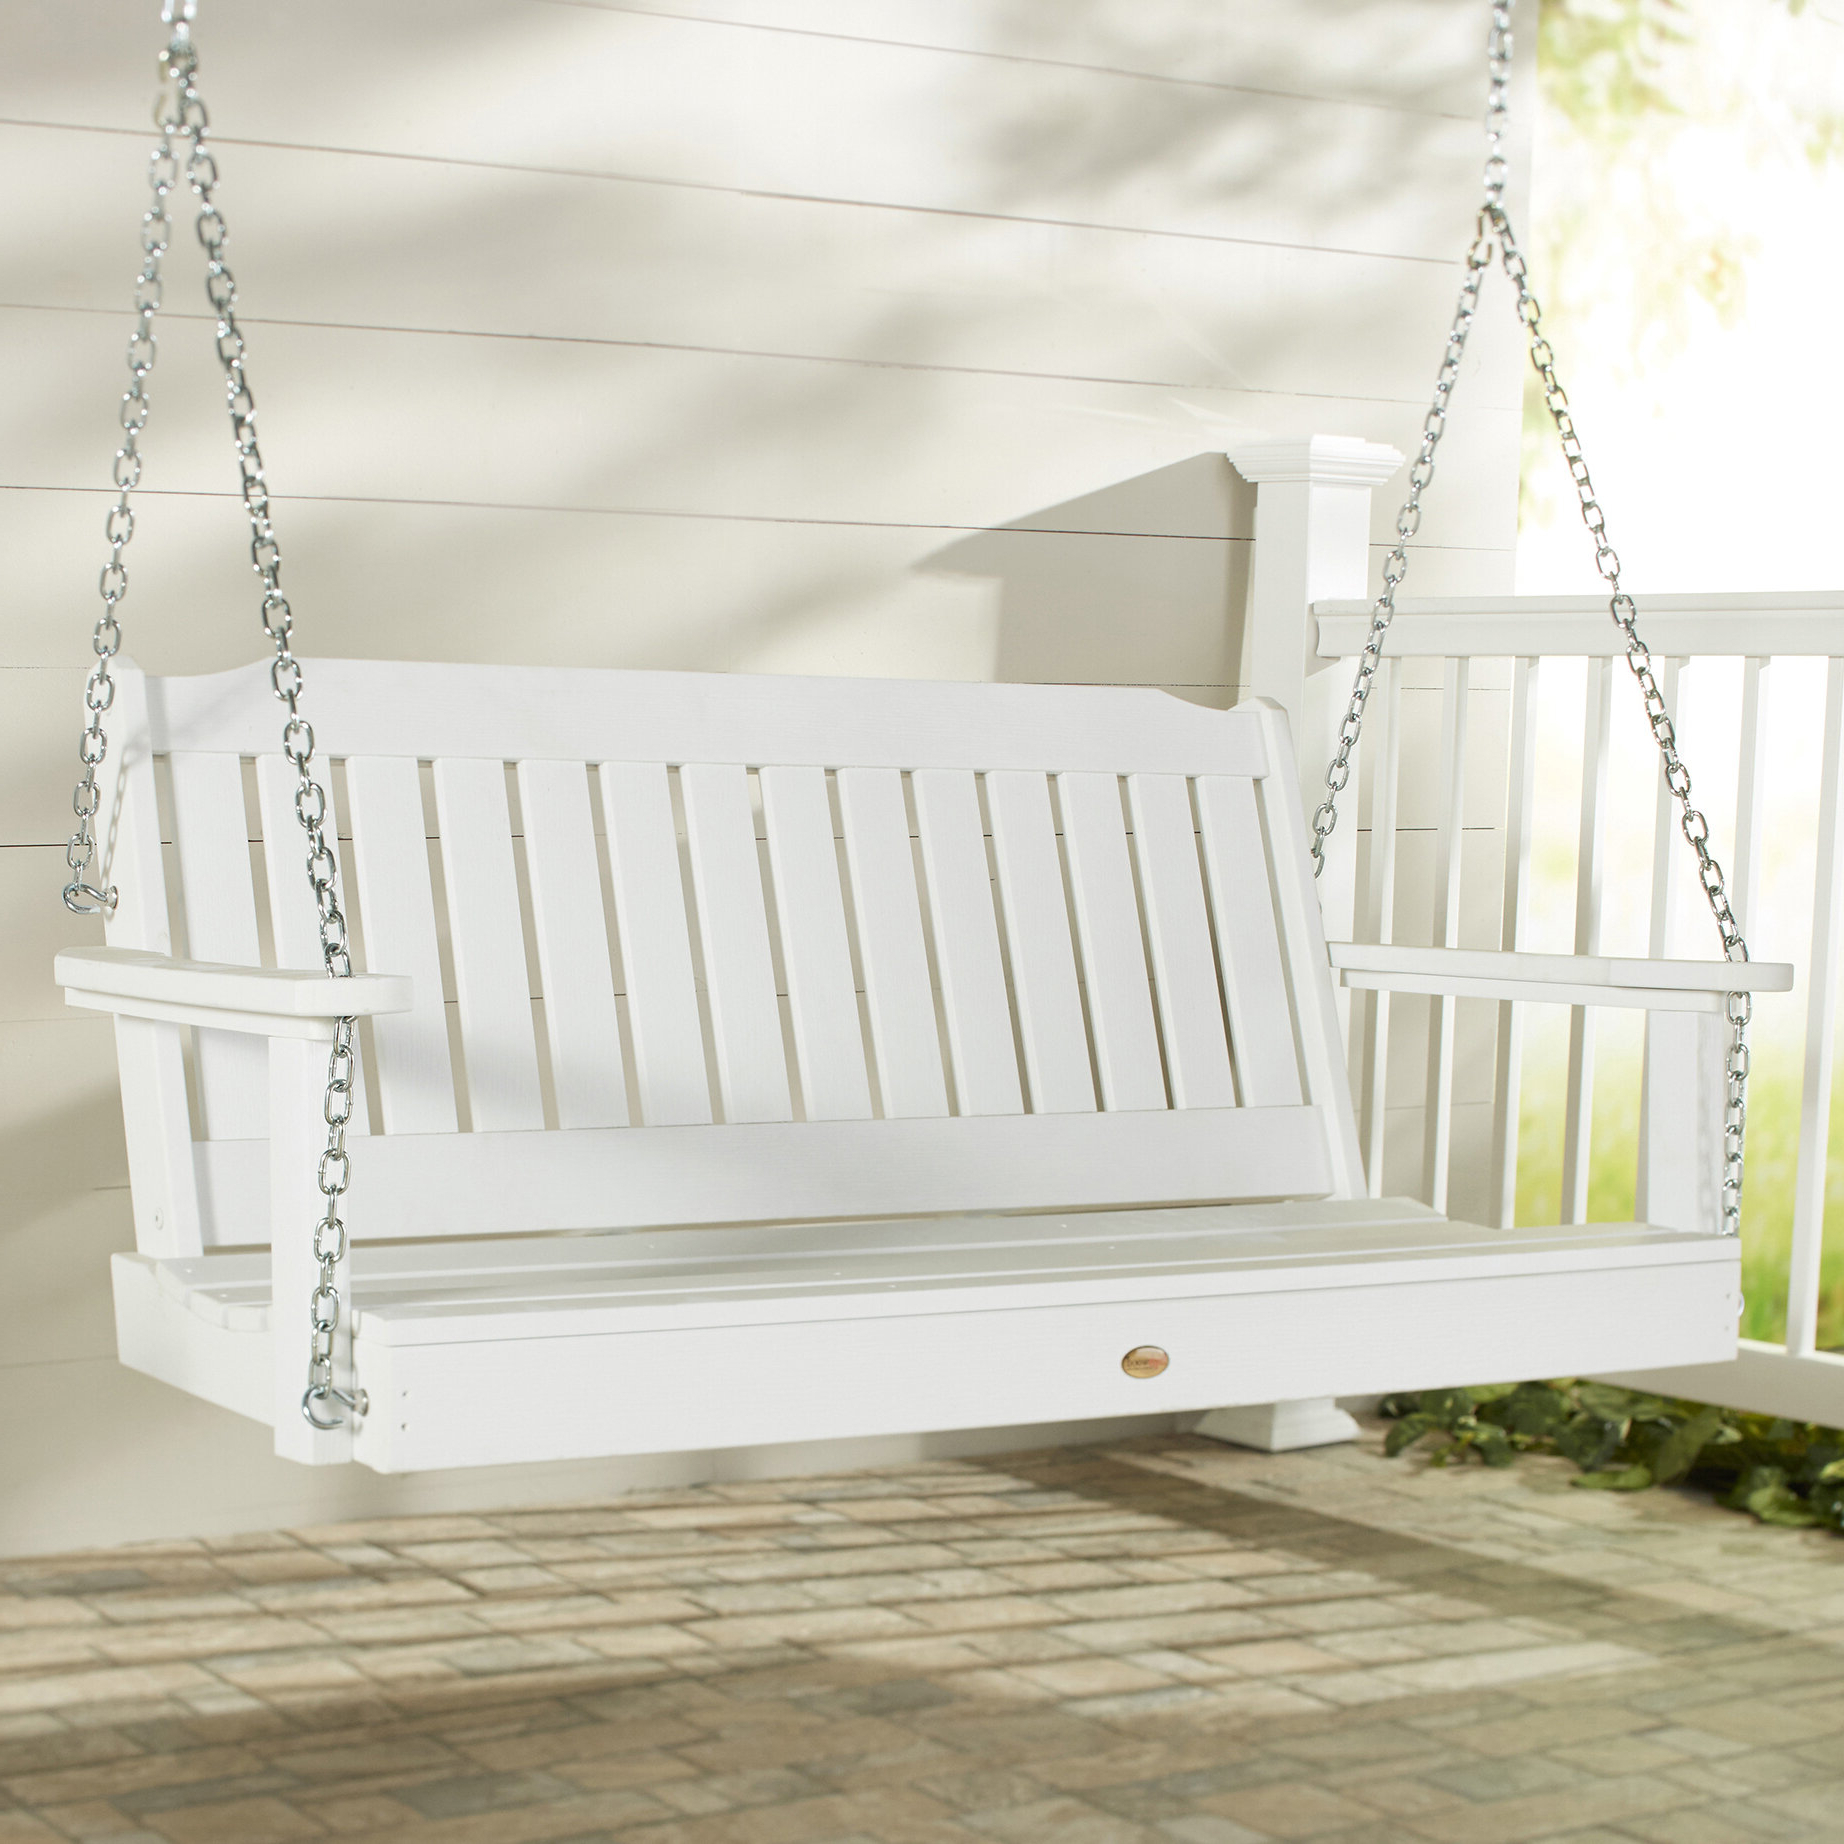 Fordyce Porch Swings With Regard To Current Amelia Porch Swing (Gallery 25 of 30)